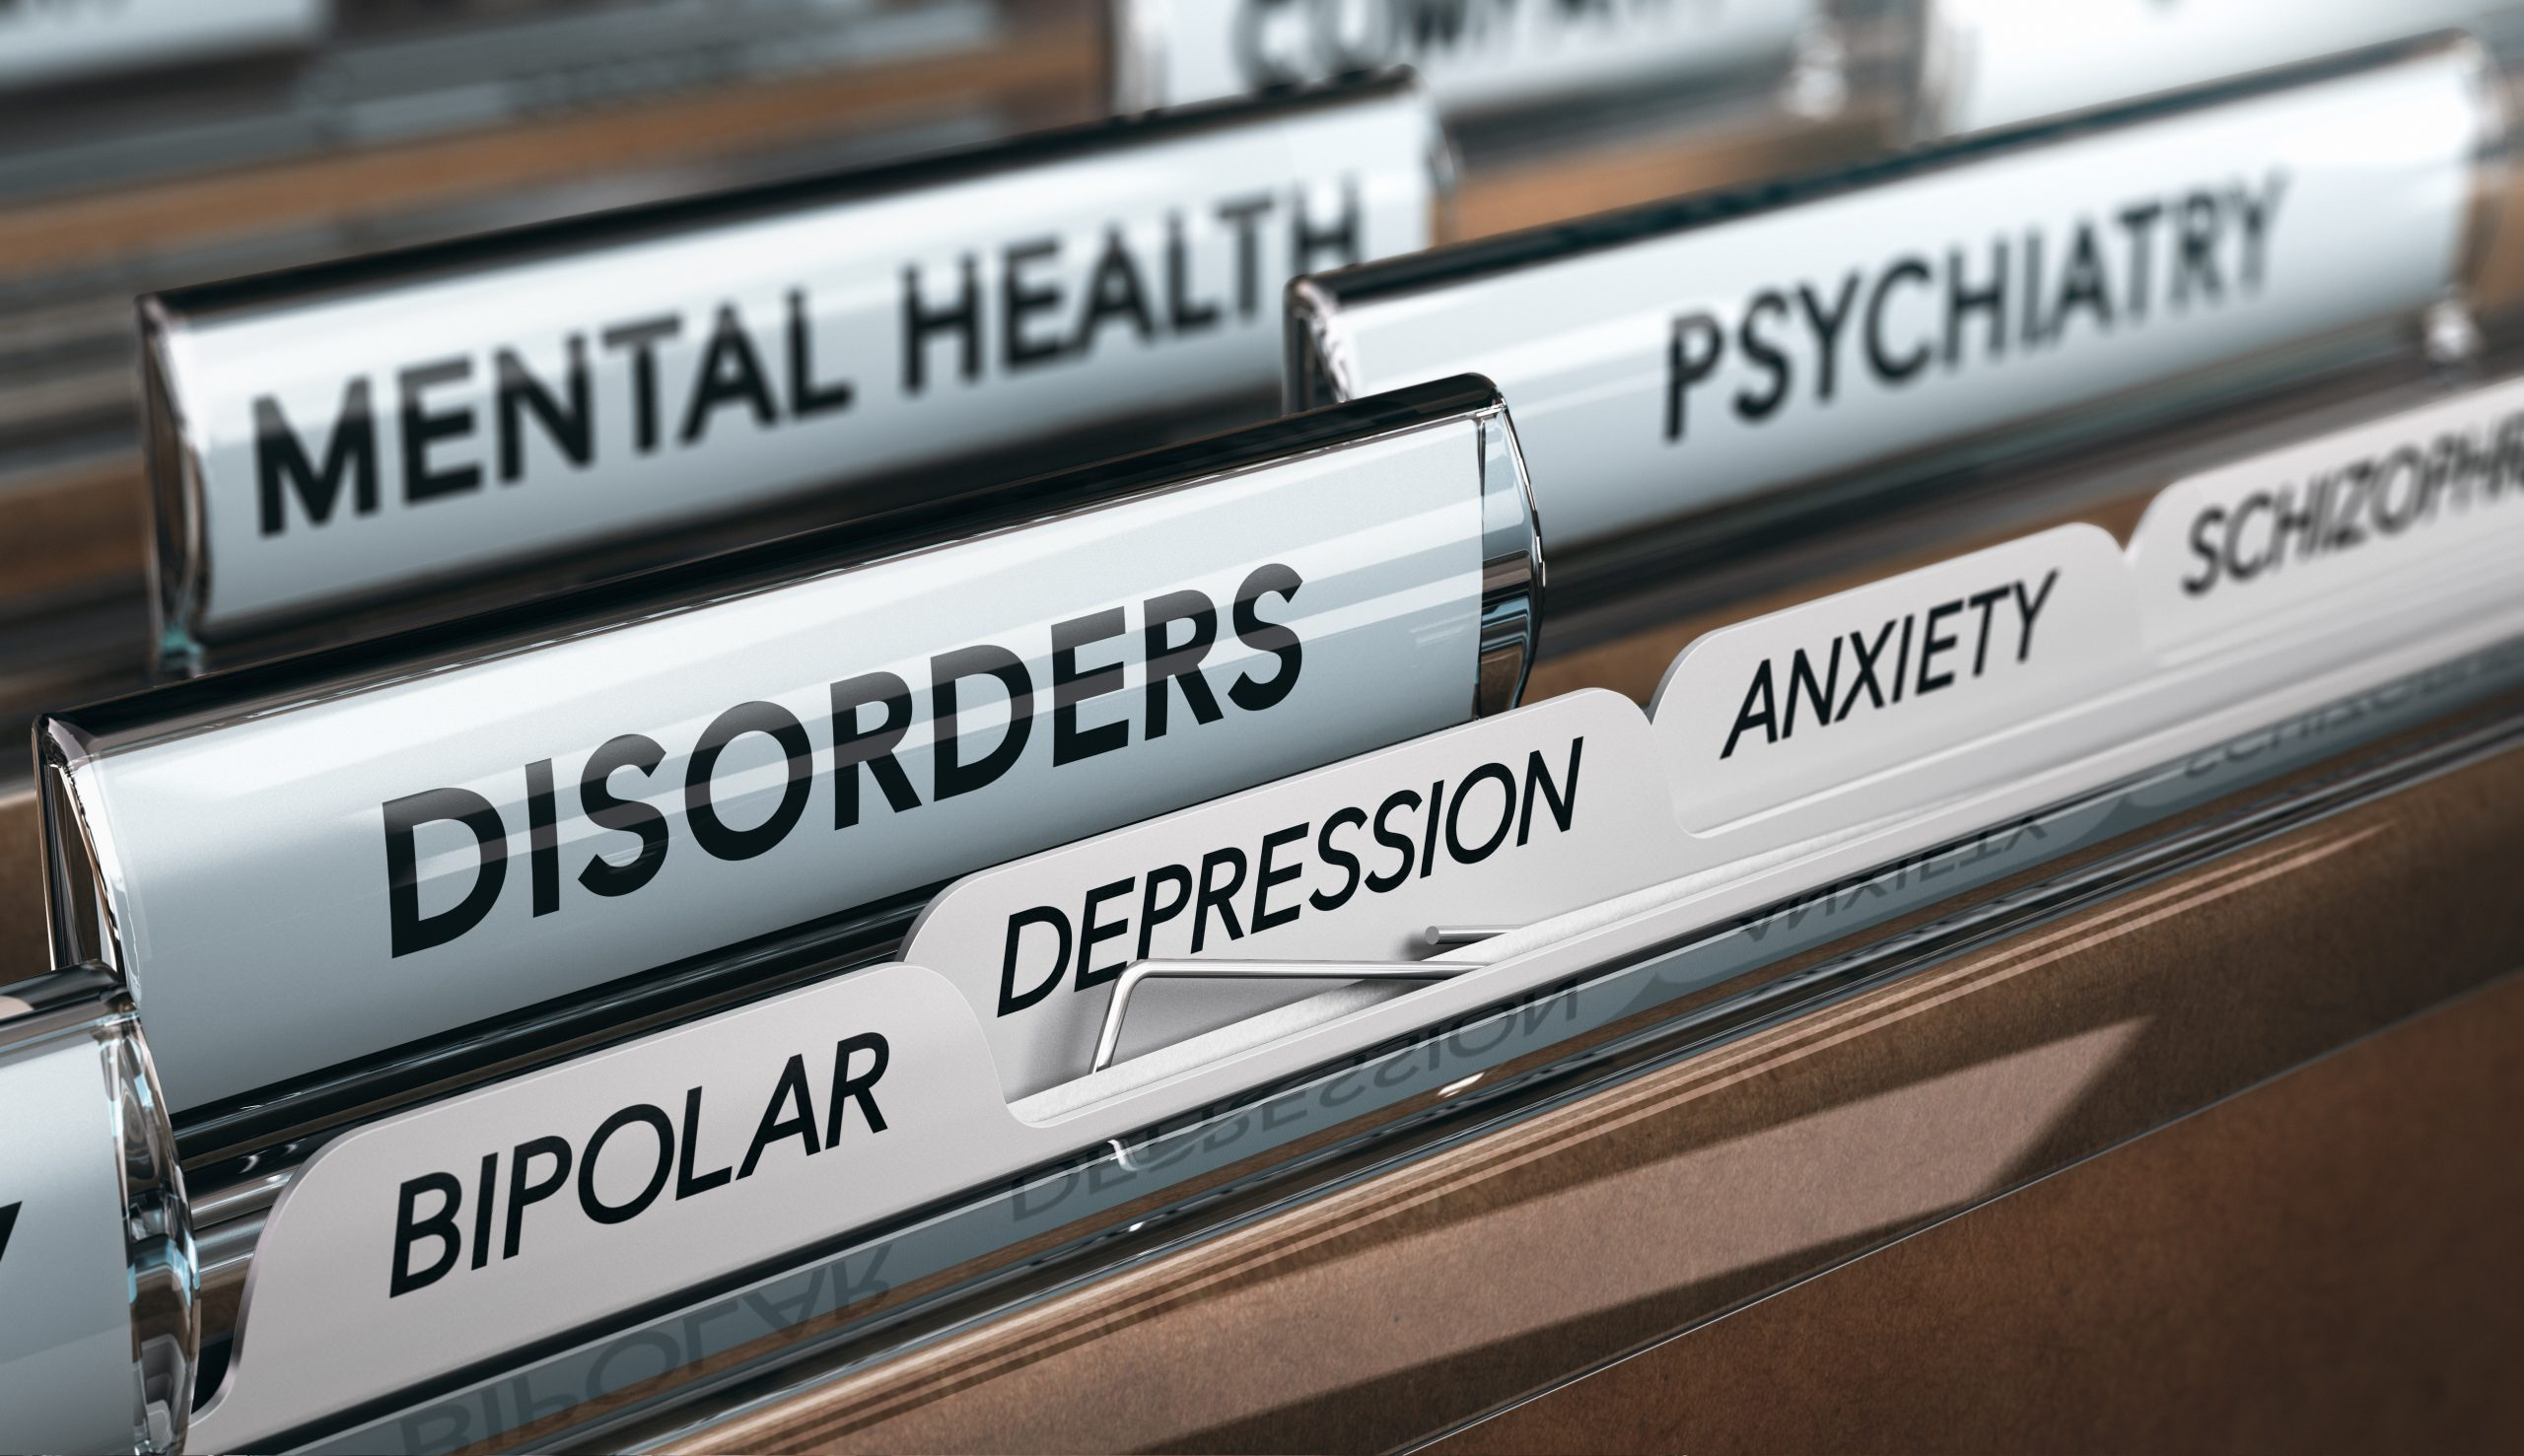 Call Top Disability Lawyer Donald Peters to Win Disability with a Mental Disorder